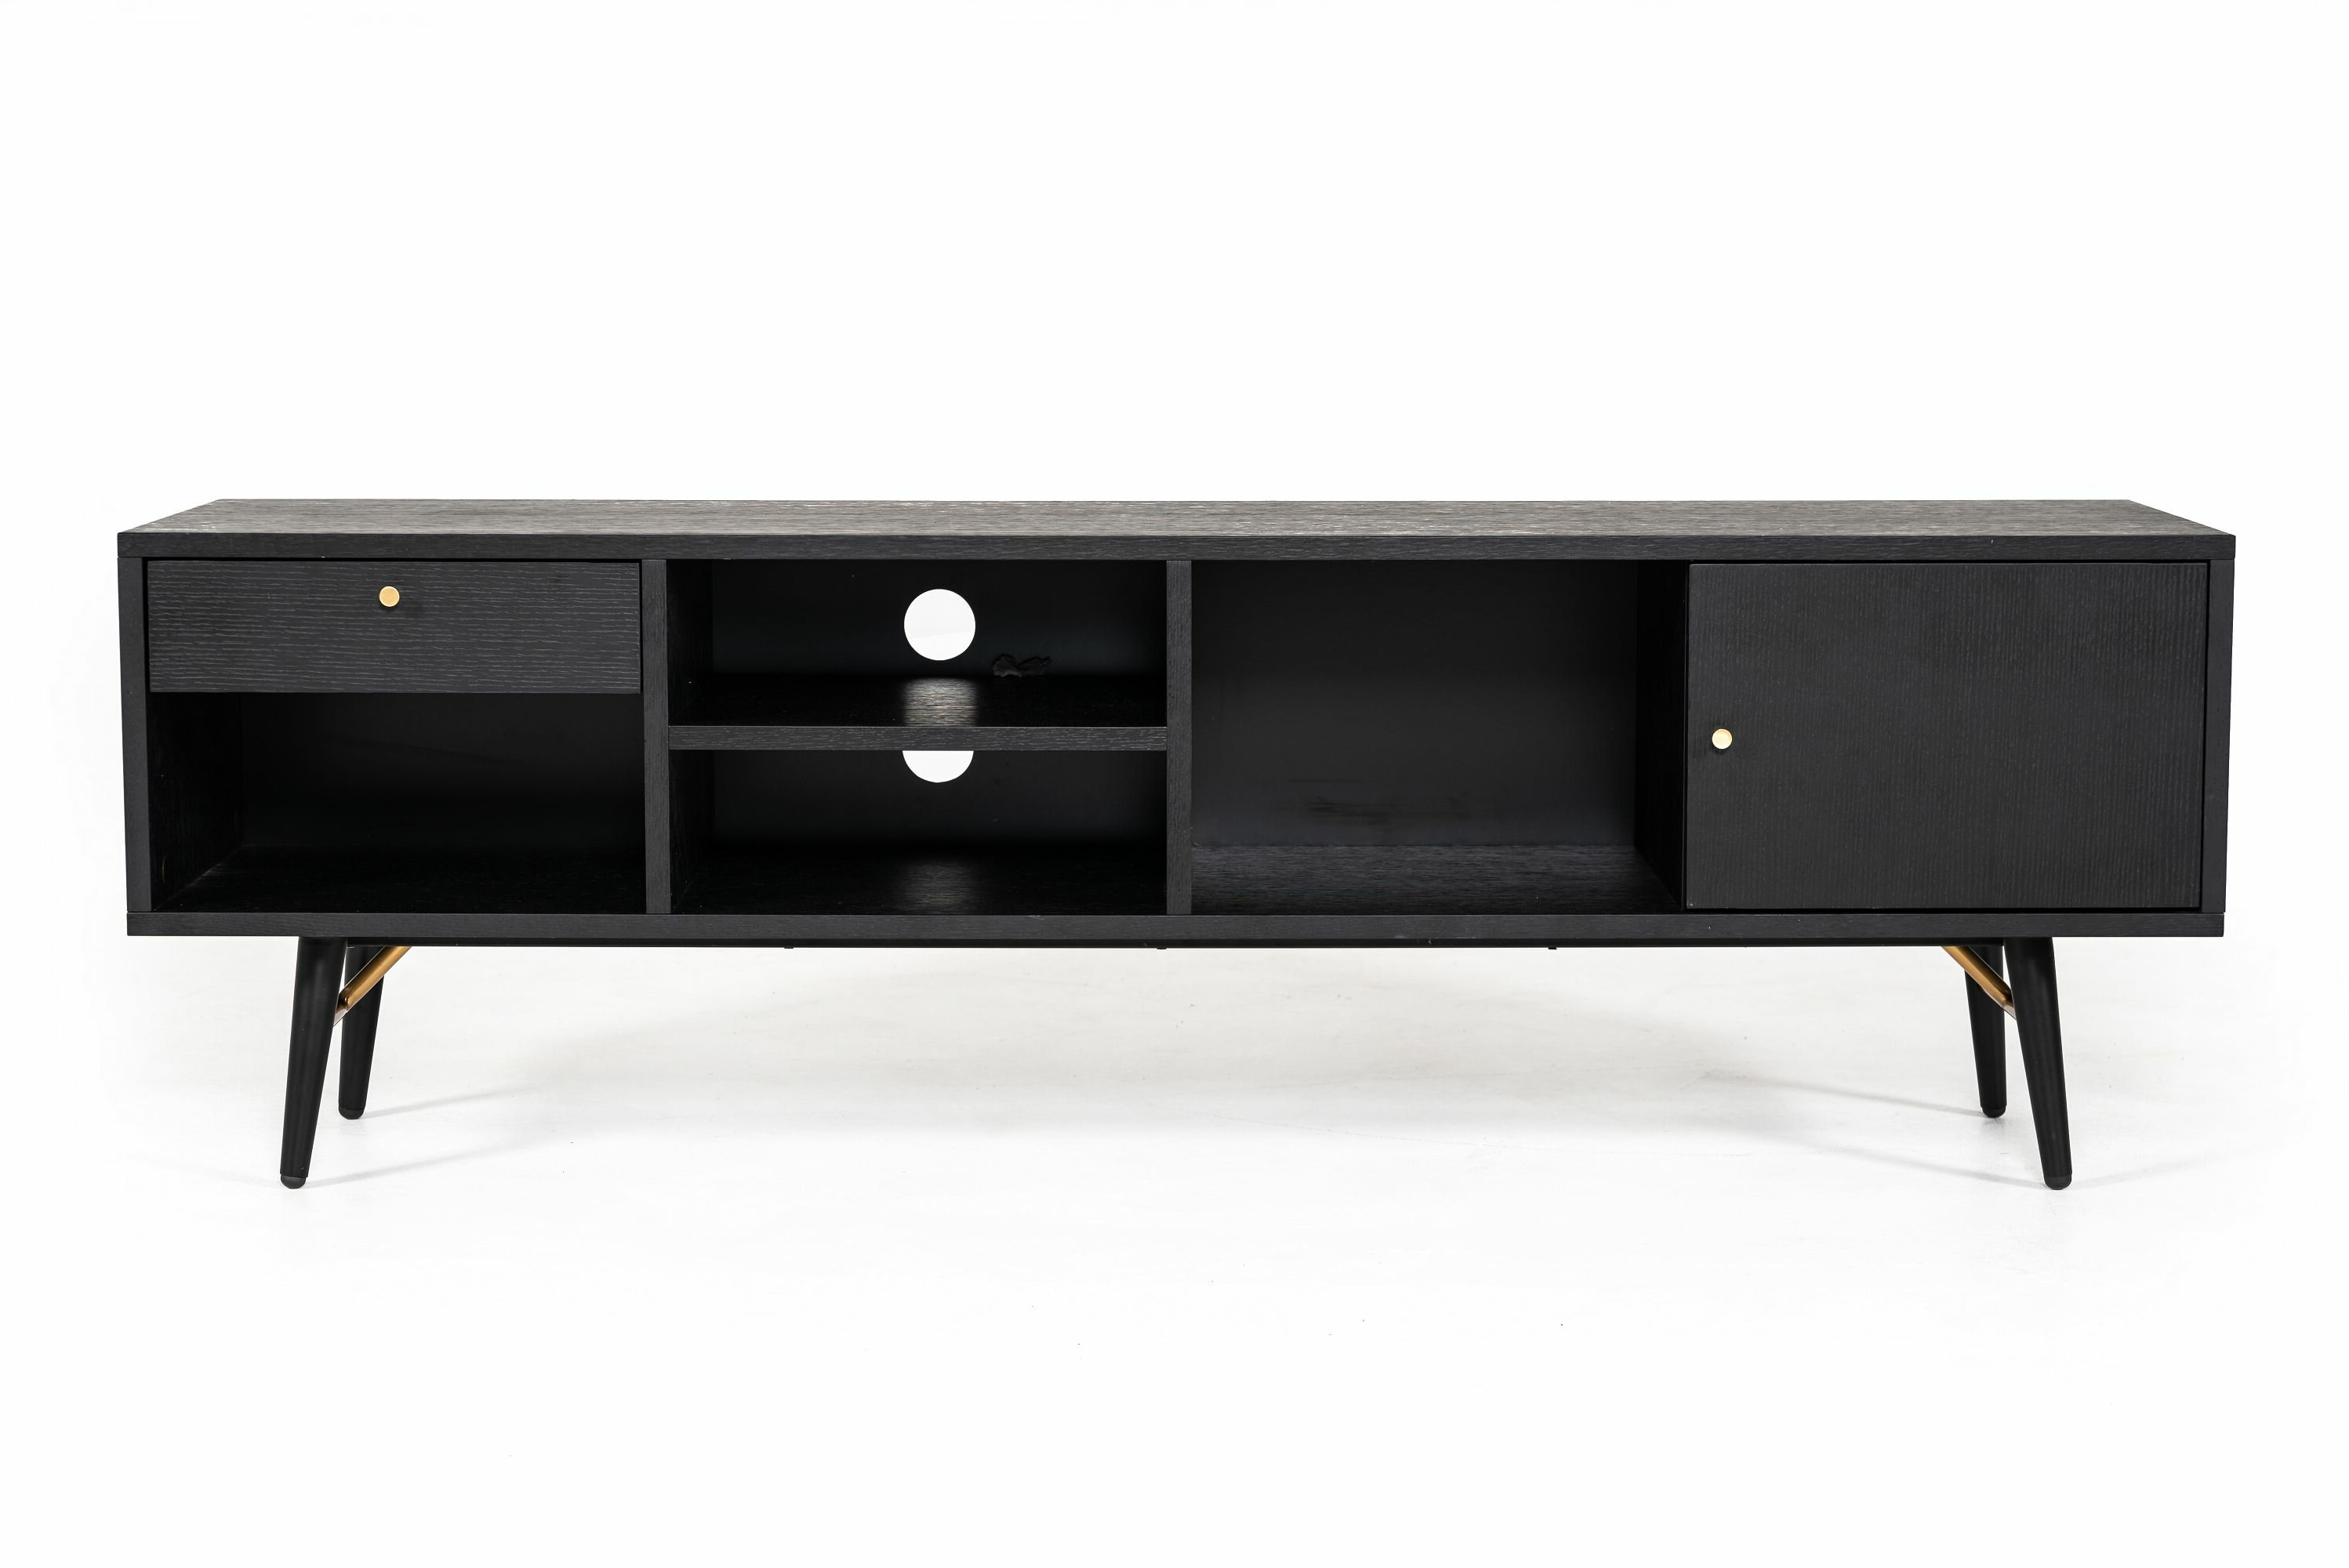 Modern & Contemporary Kieth 4 Door Credenza | Allmodern Pertaining To Kieth 4 Door Credenzas (View 11 of 20)